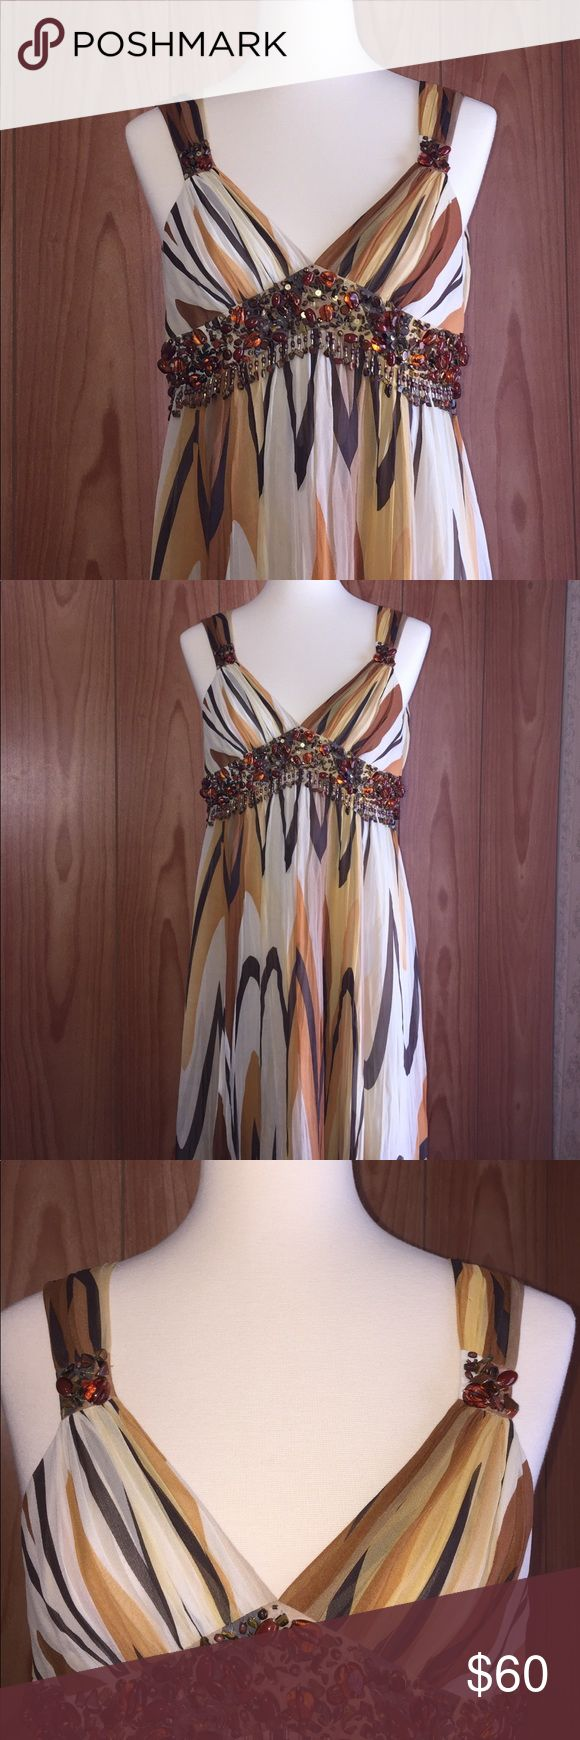 """NWT BCBG 2STRP EMPIRE WAIST SILK DRESS Approximately 30"""" long. New with tags attached. Java color BCBG Dresses"""